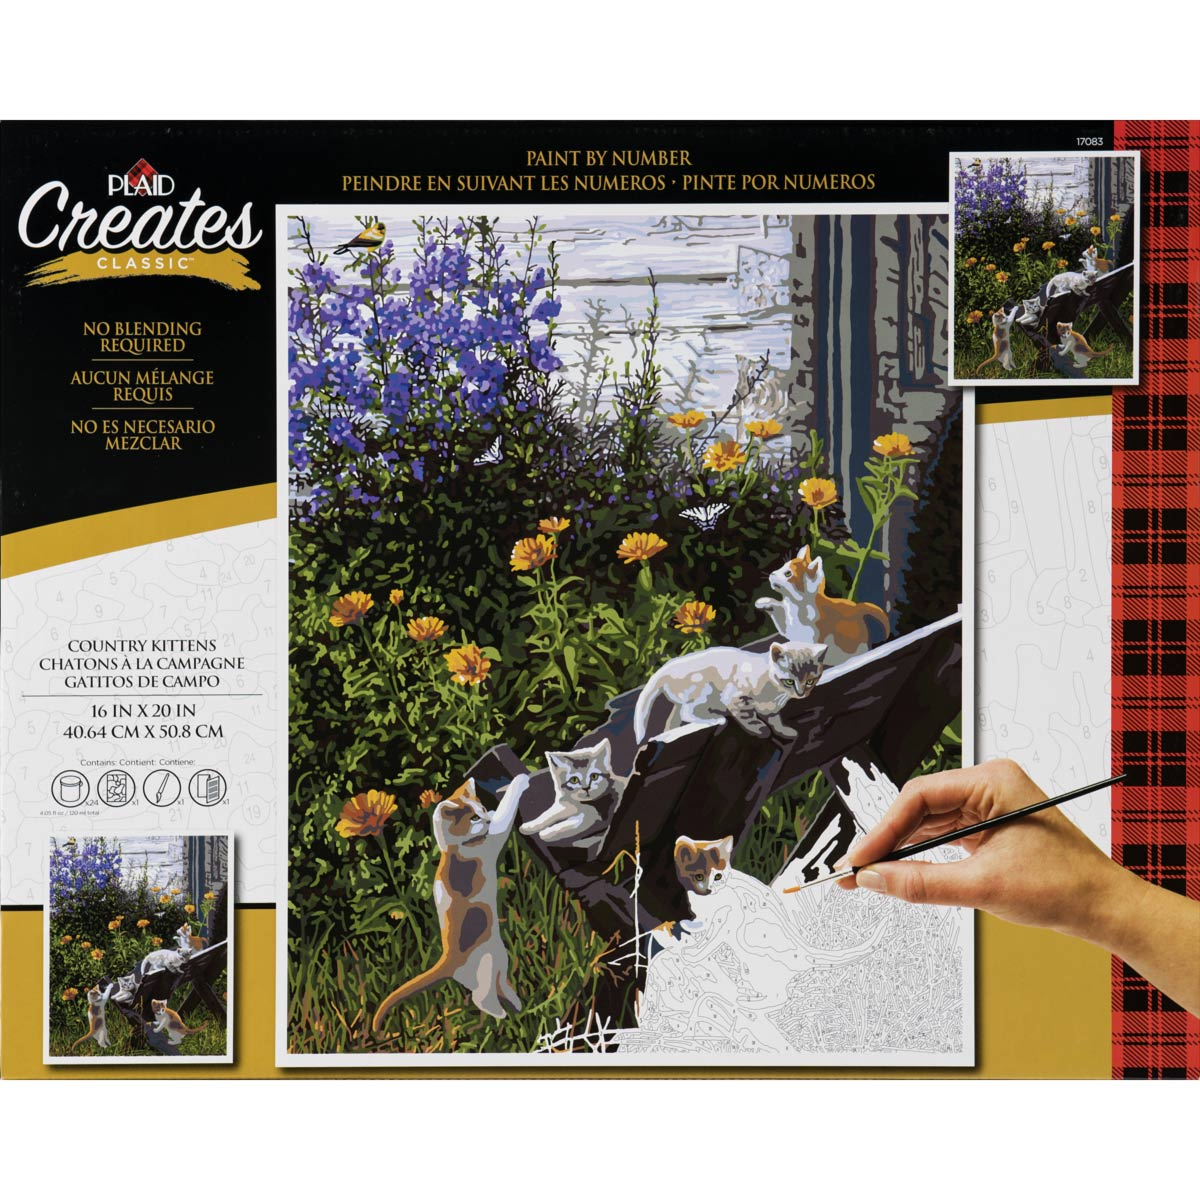 Plaid ® Paint by Number - Country Kittens